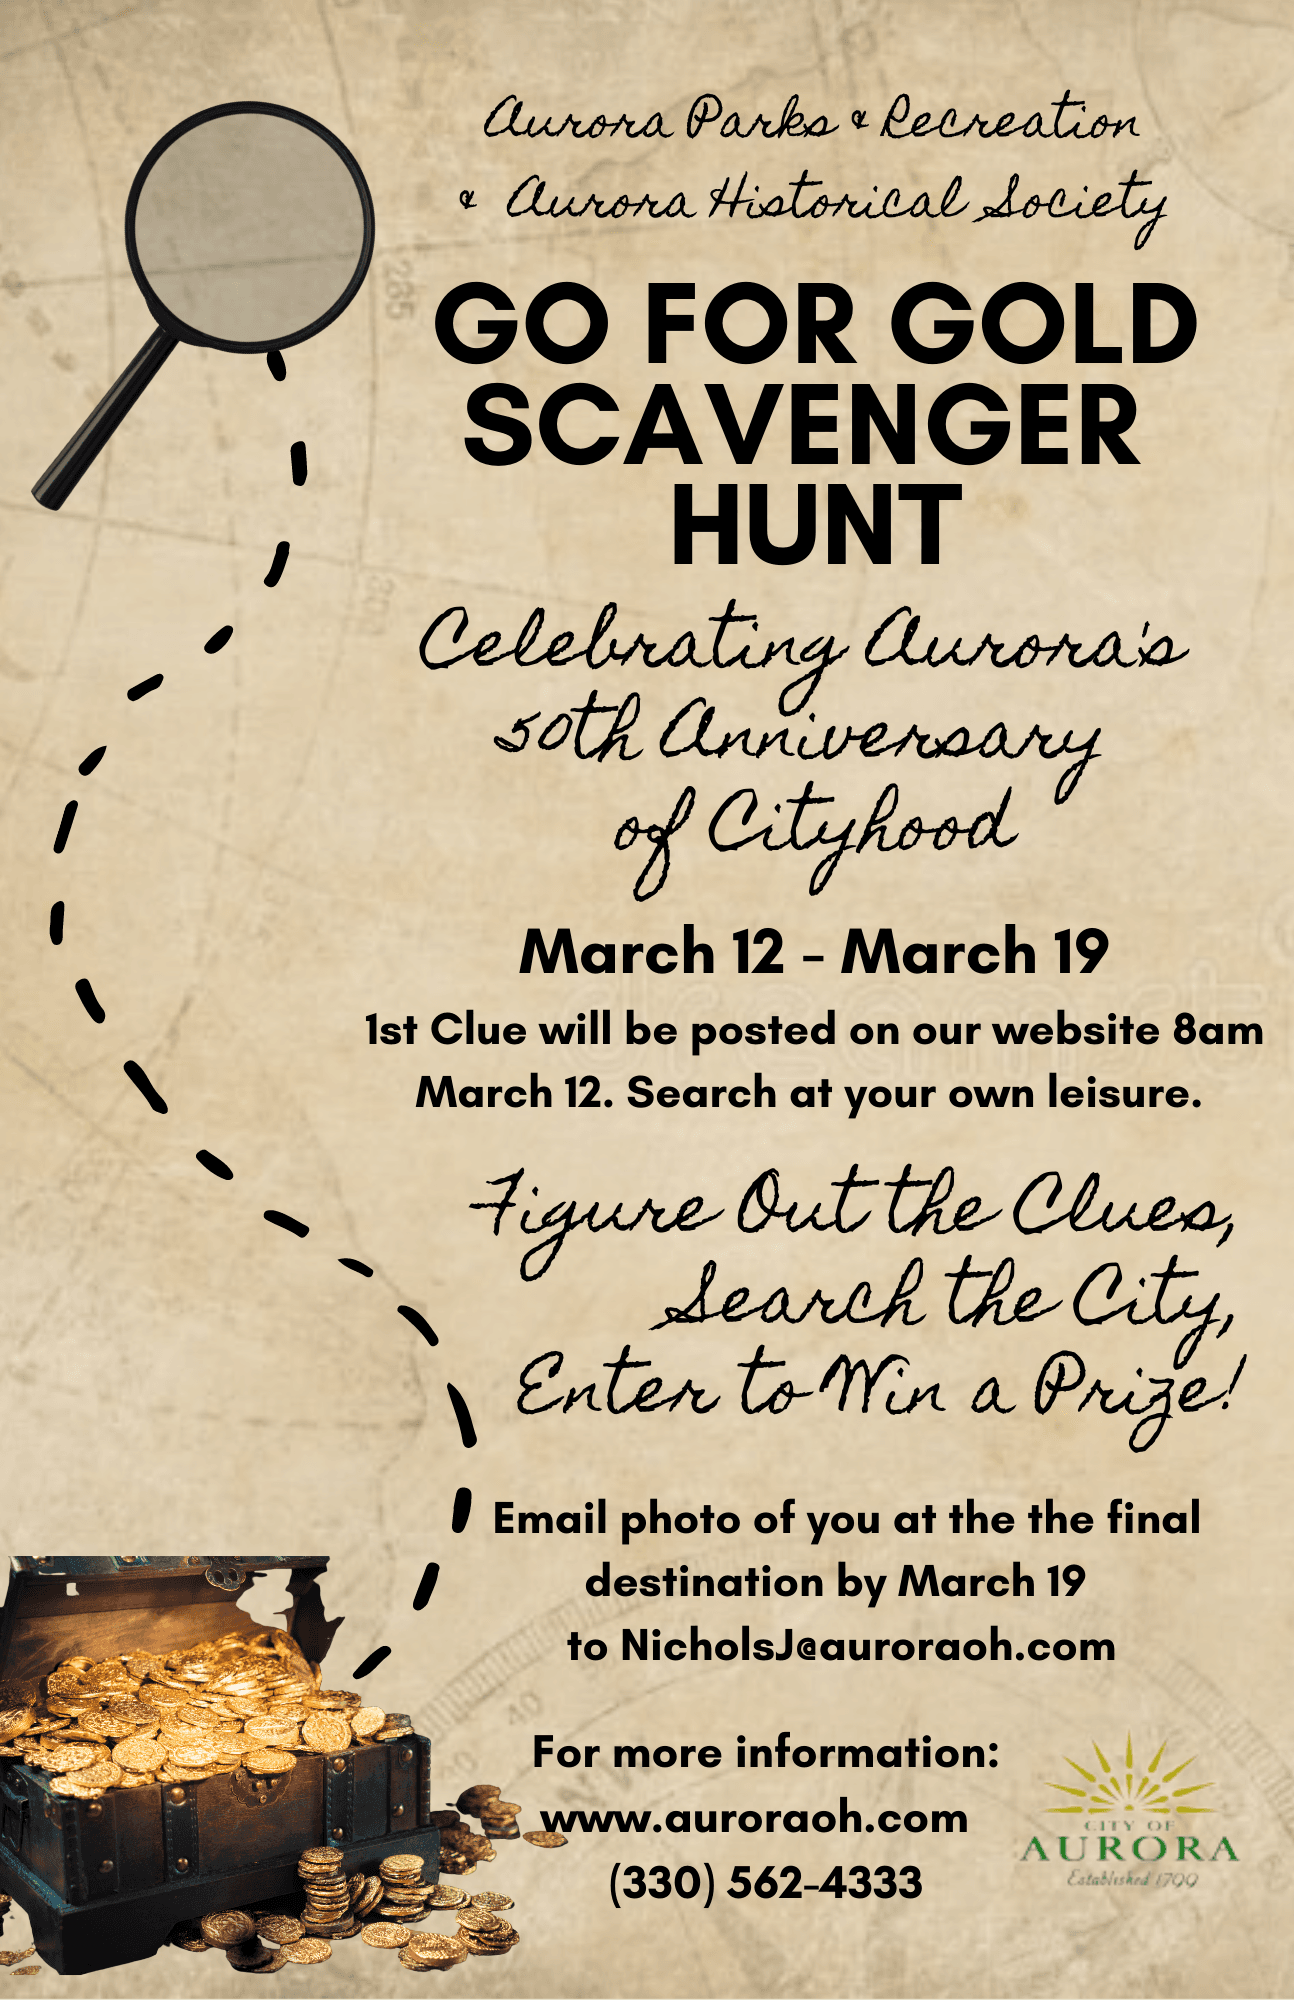 Go for Gold Scavenger Hunt Flyer PNG